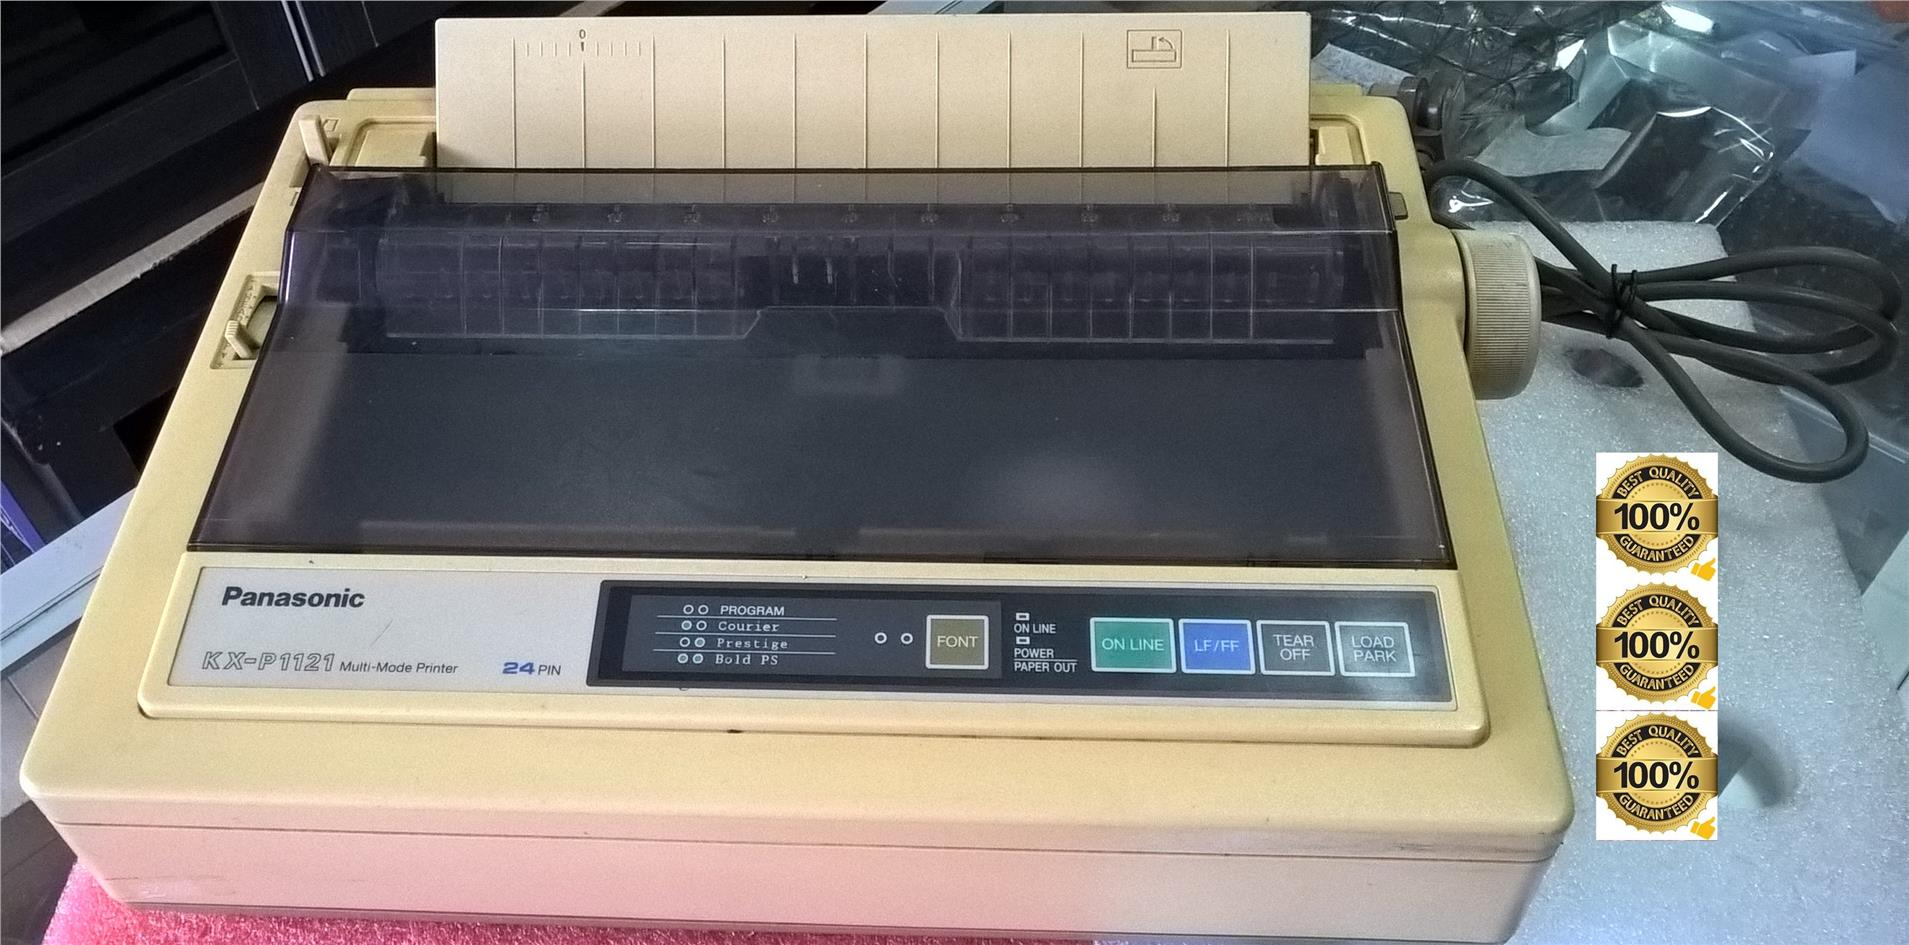 Tvs Dot Matrix Printer Driver For Windows 7 64 Bit